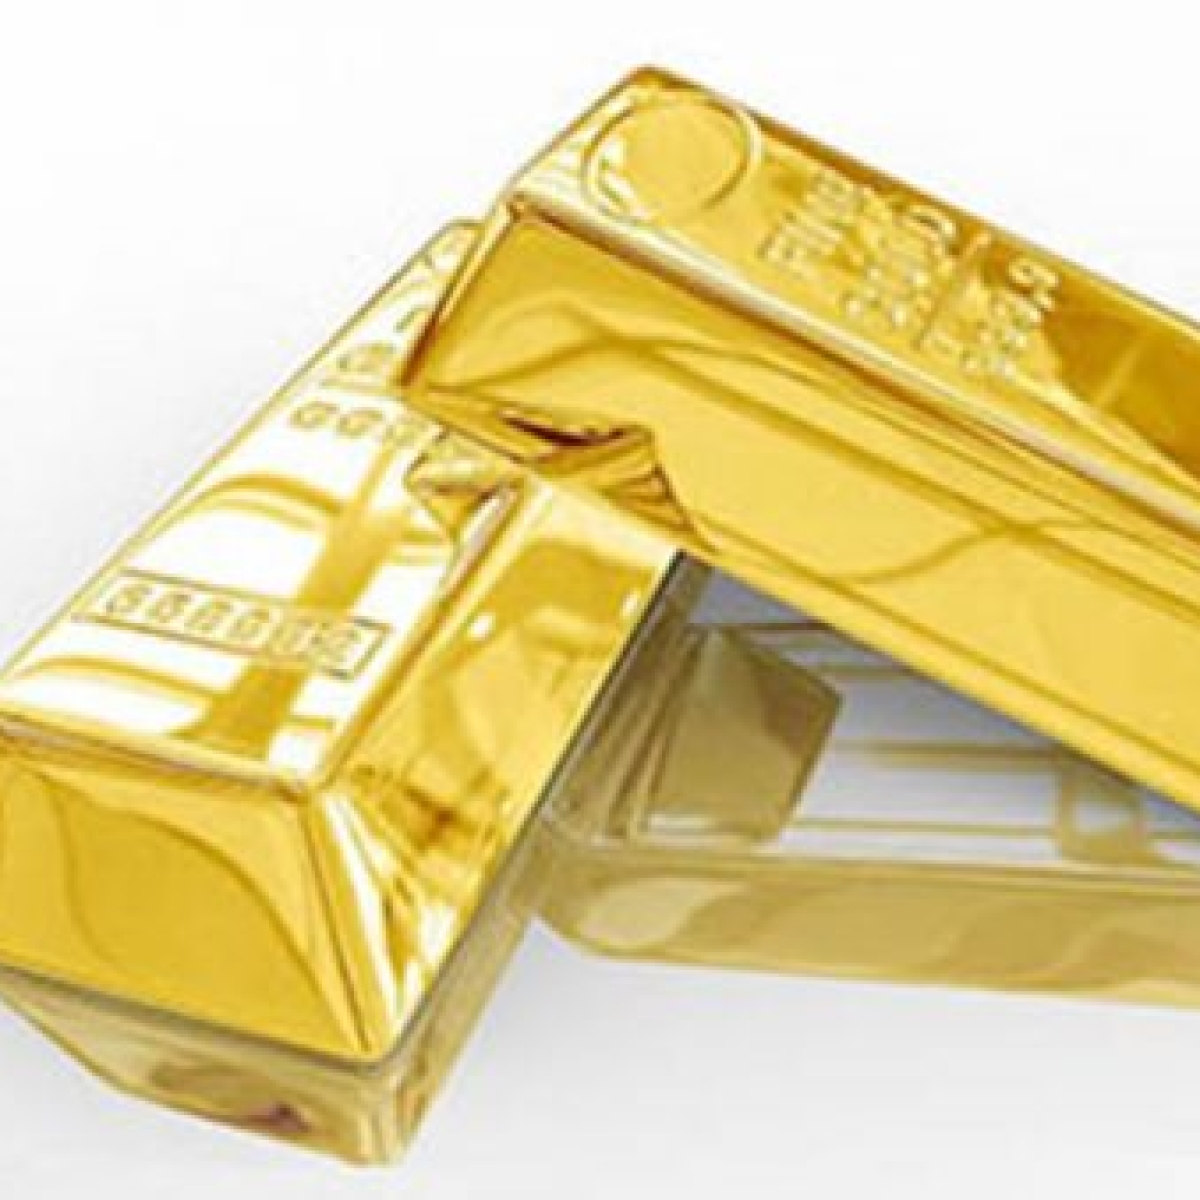 Govt to sell sovereign gold bonds in 6 tranches in Apr-Sep